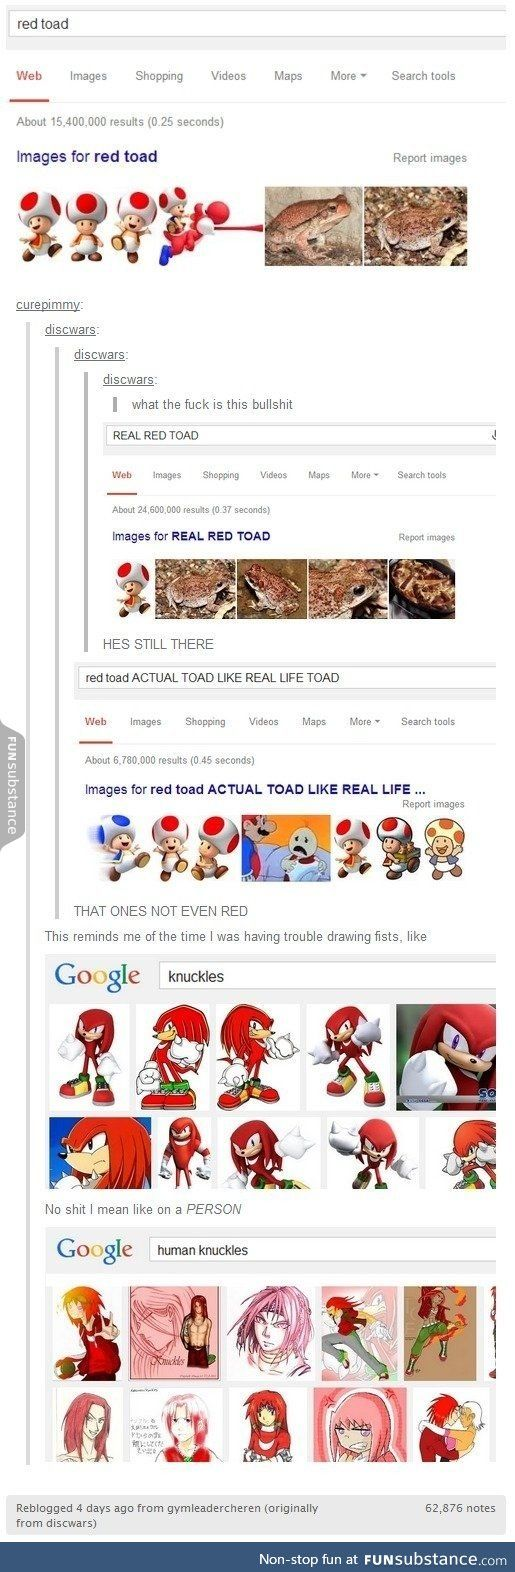 LIFE HACK after your search, if you put a minus and a word it will exclude any search results with that word. For example, if the first person typed -mario after the search, it would have gotten rid of most or all of the Toadstool pictures.